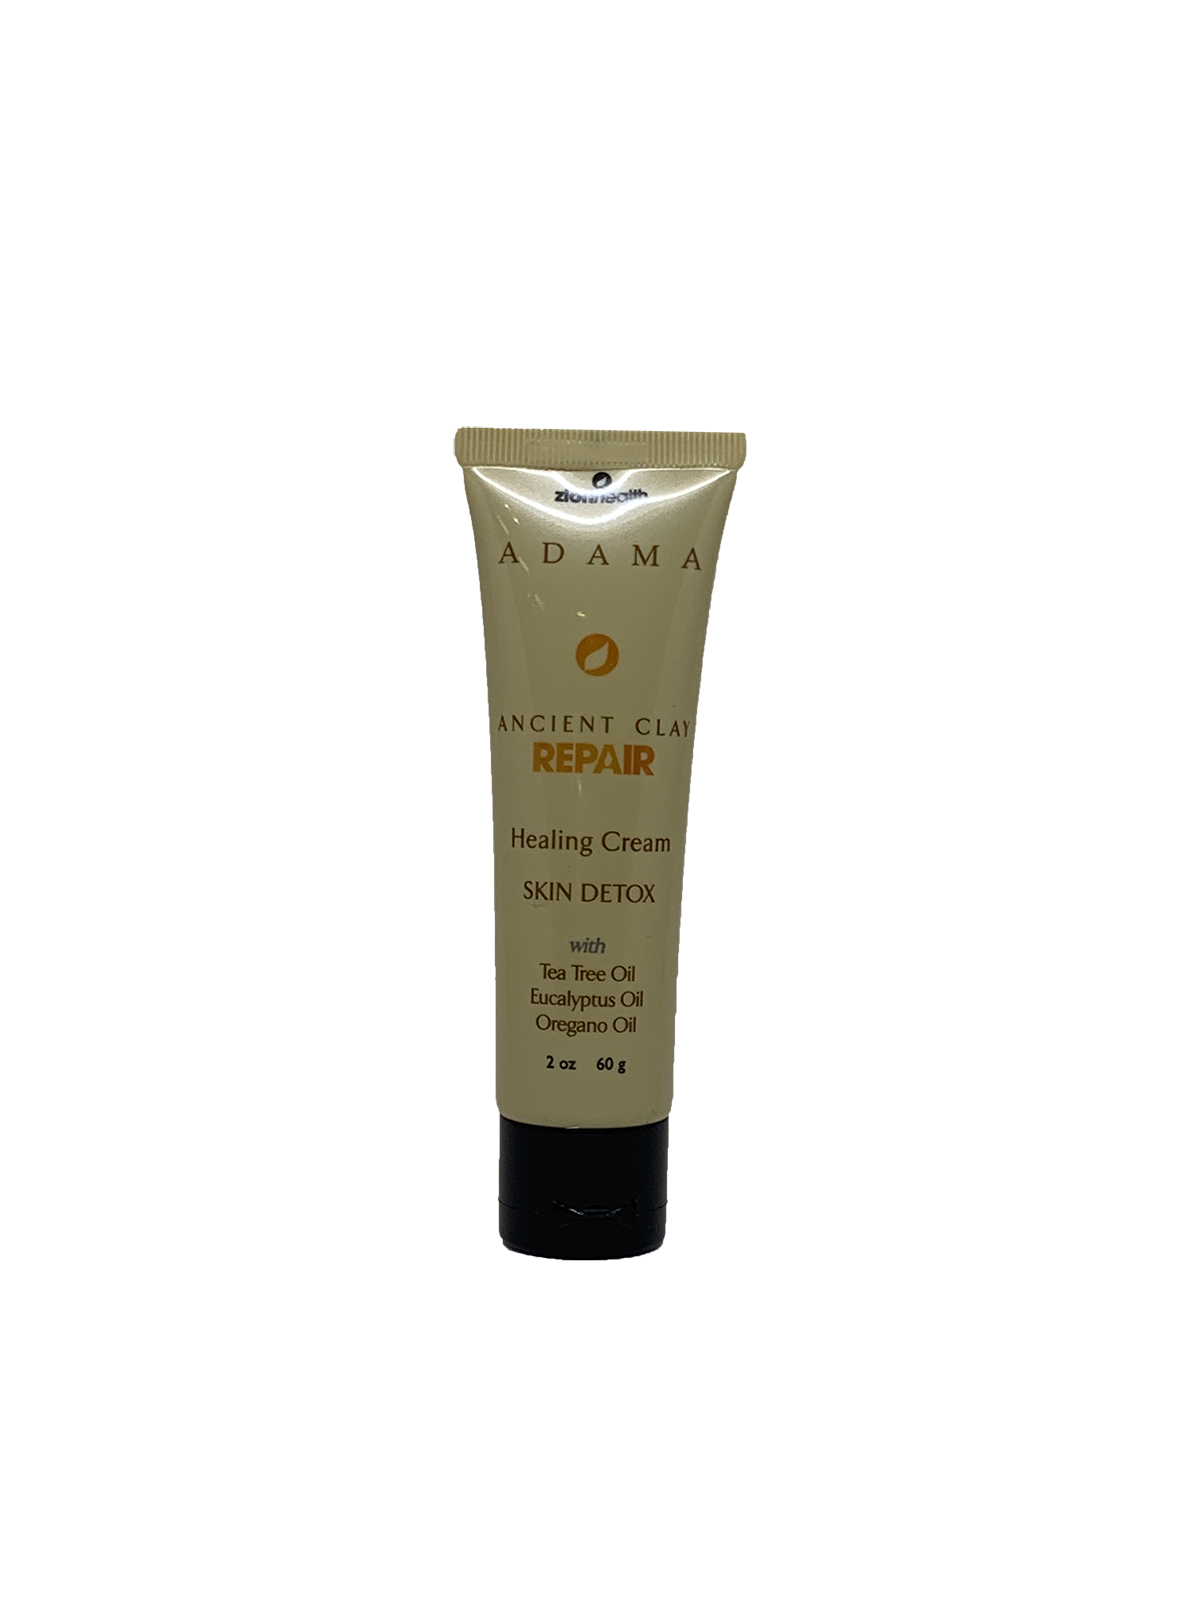 Adama Ancient Clay Healing Cream